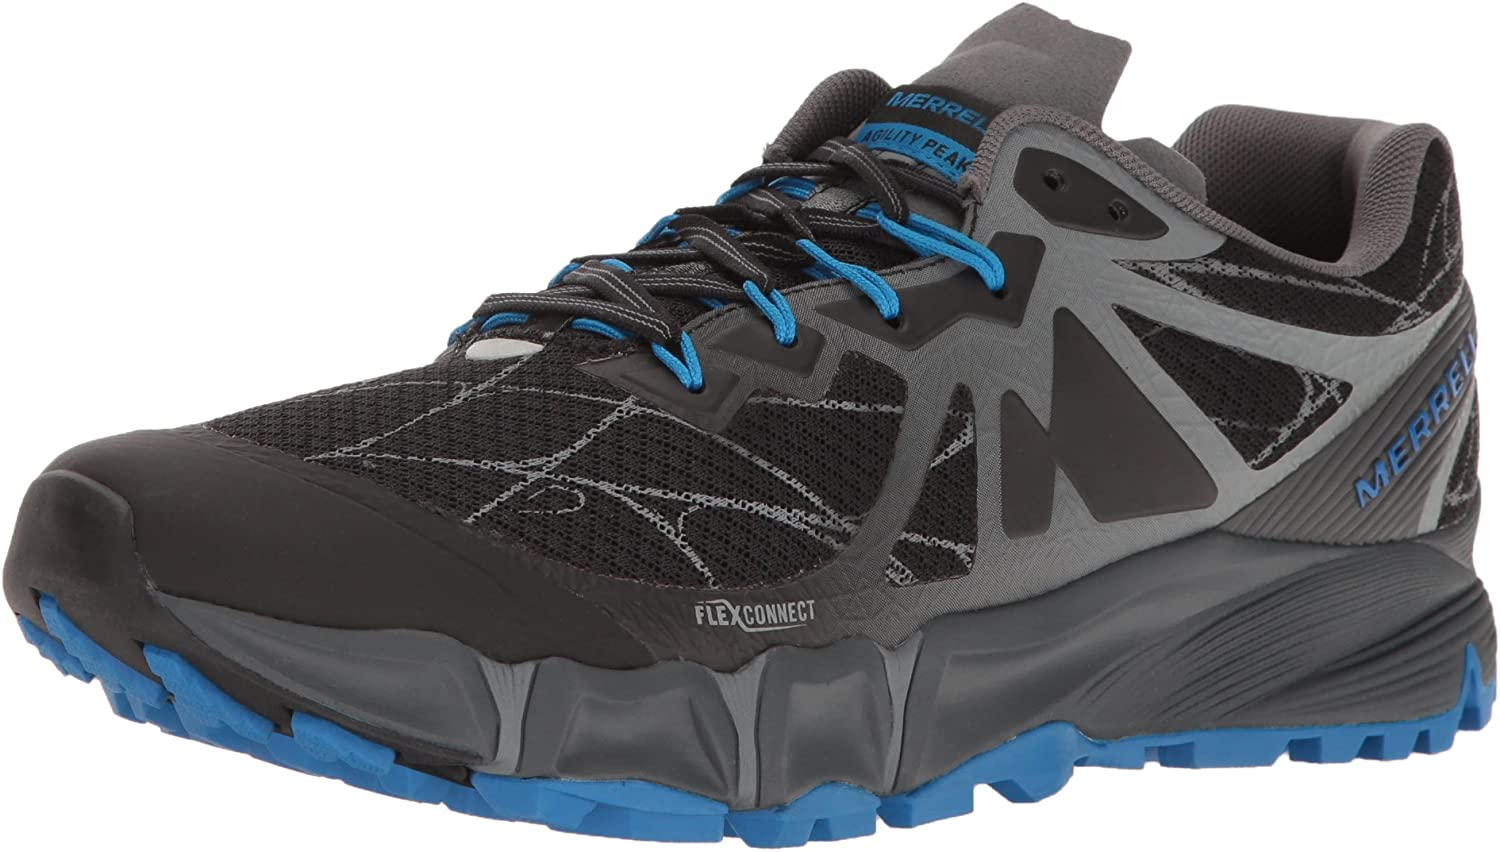 Merrell Men s Agility Peak Flex Trail Runner